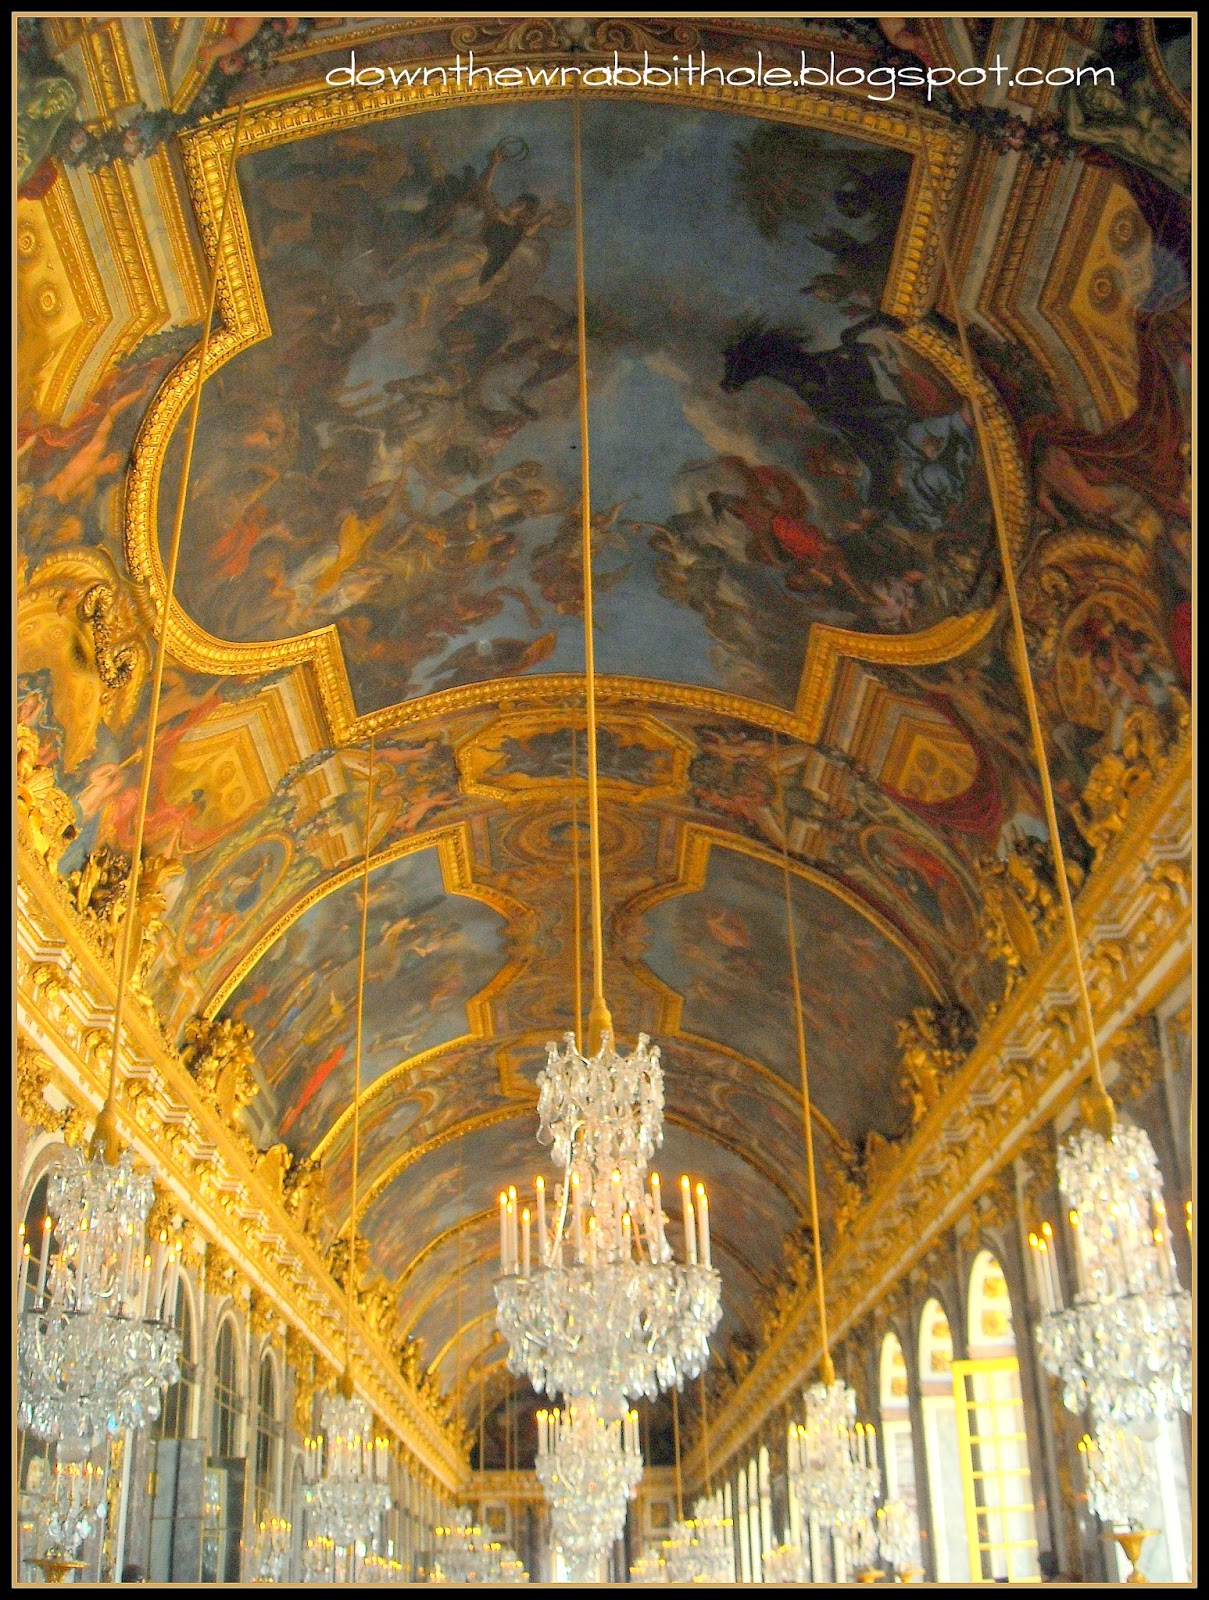 Palace of Versailles, things to see in Paris, Paris tourism